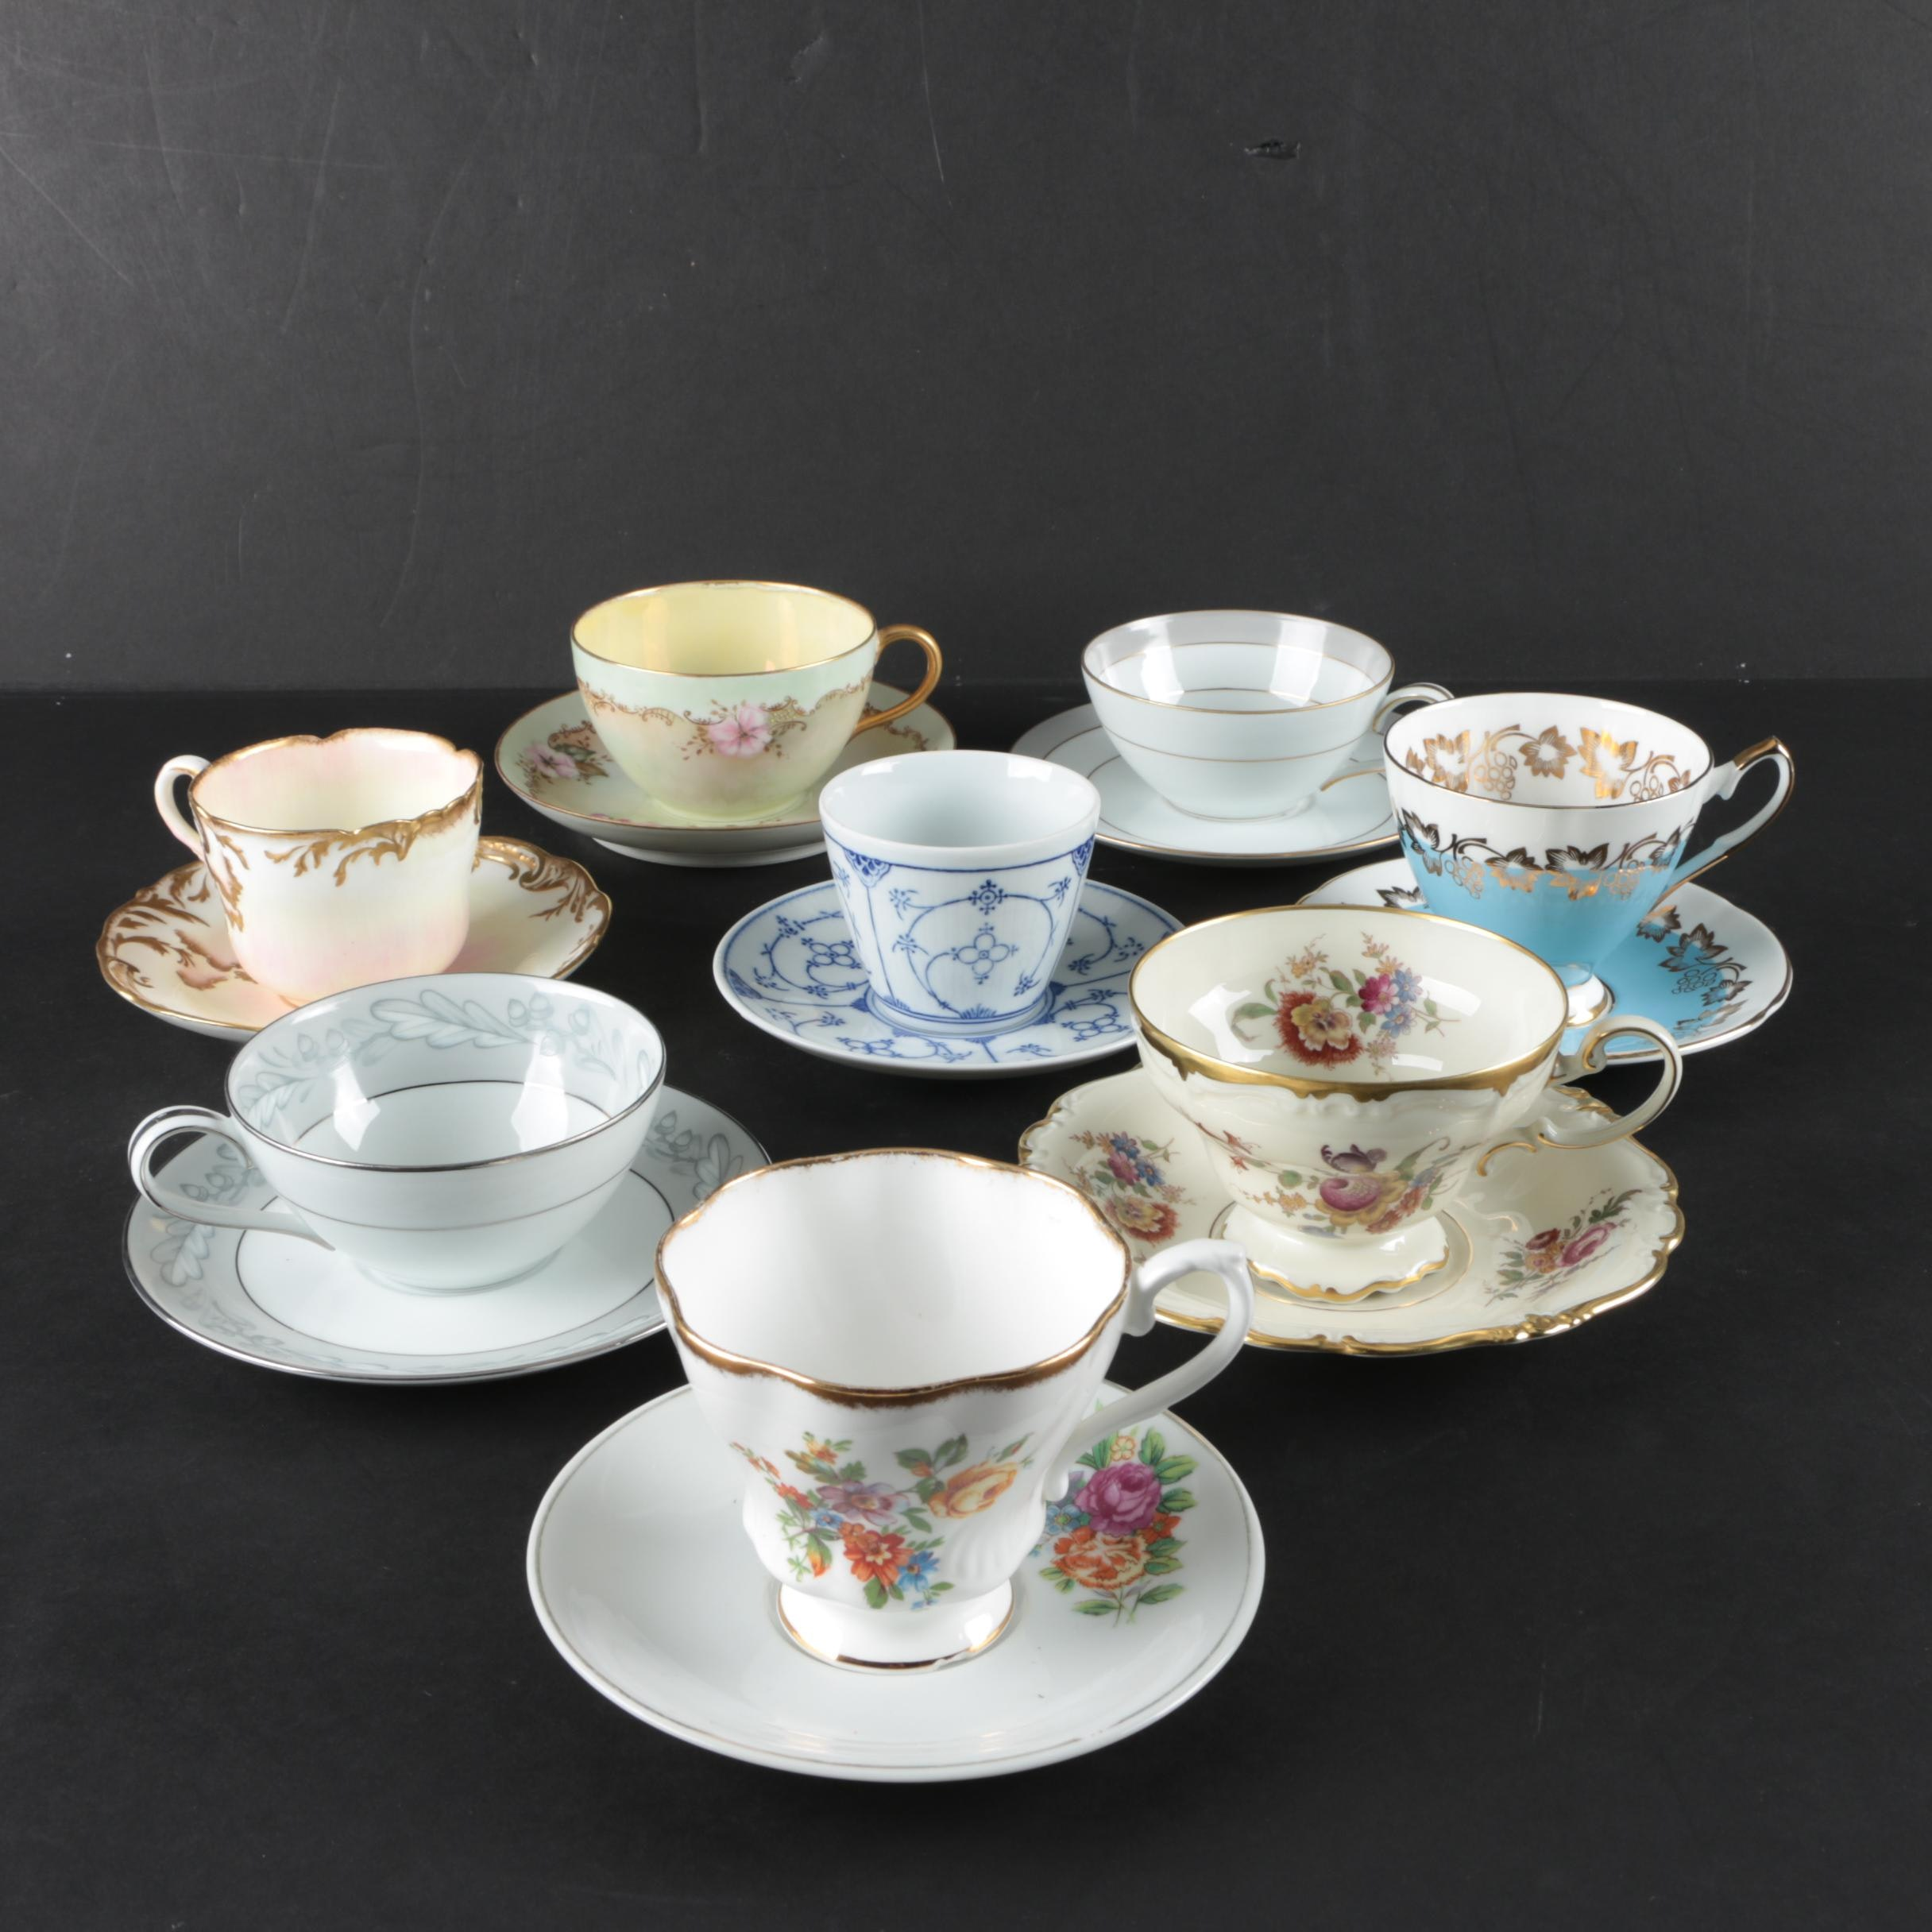 Teacups and Saucers Featuring Noritake